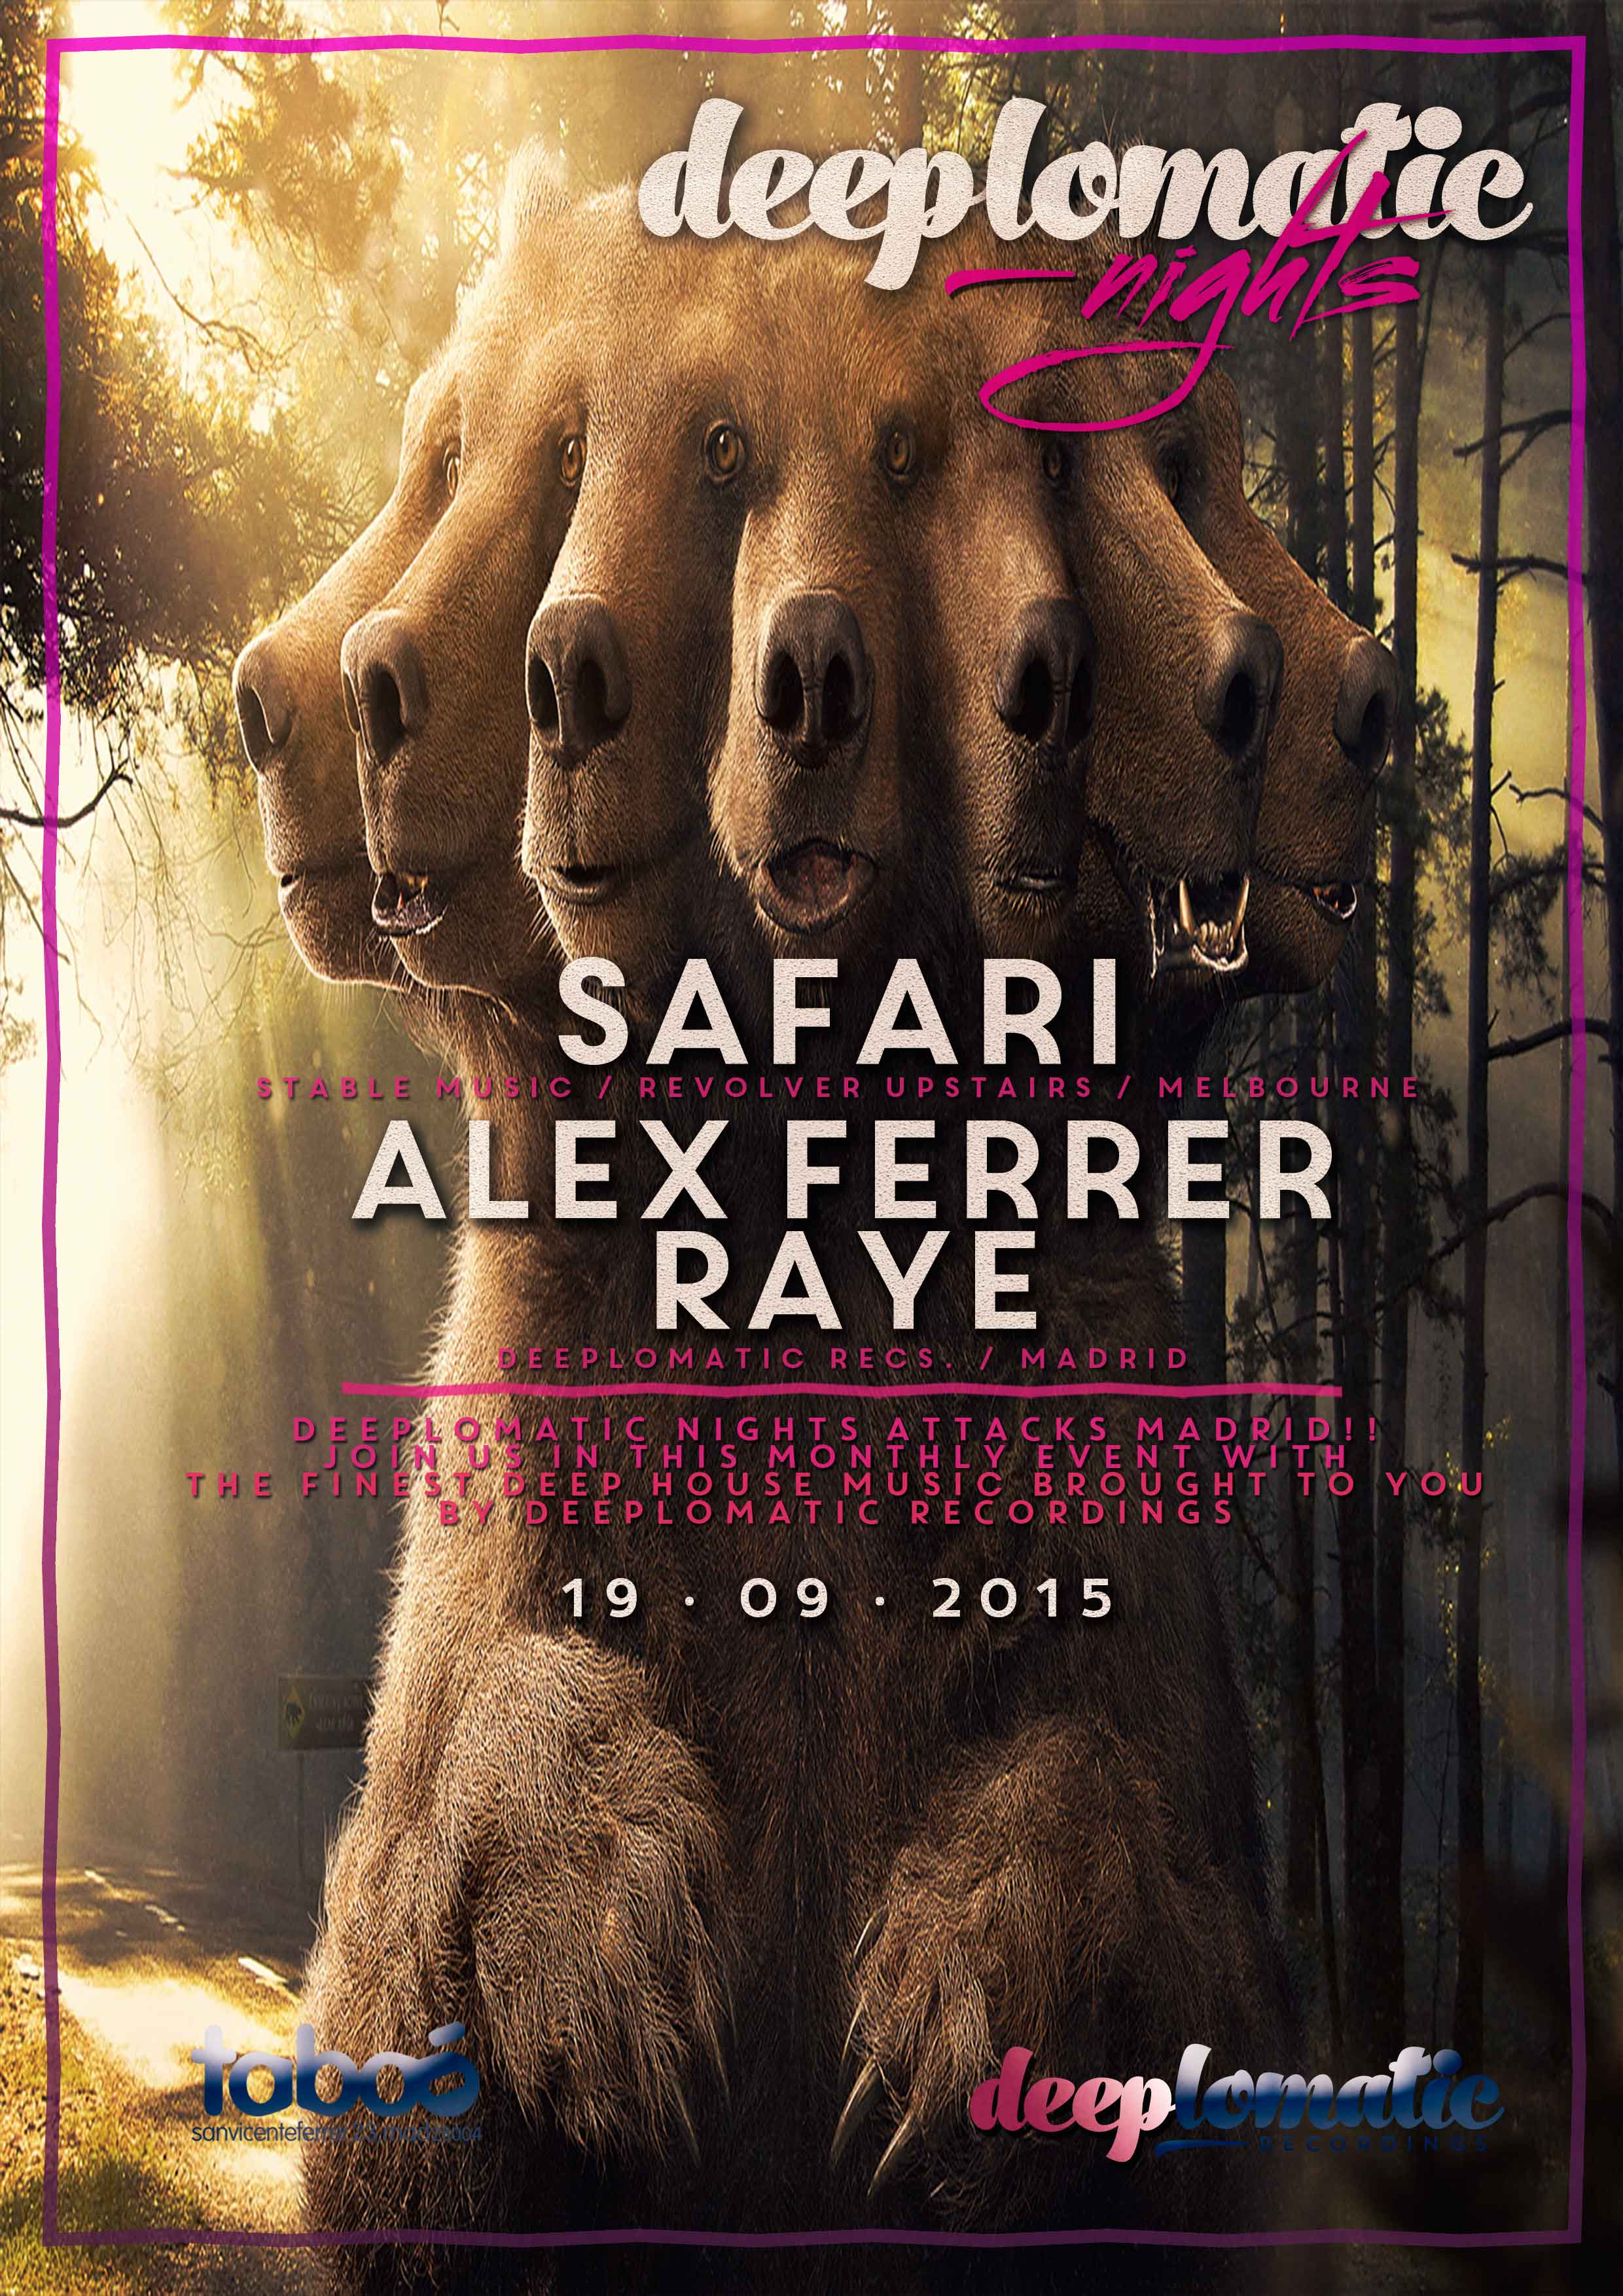 Deeplomatic Nights pres. Safari (Stable Music, Revolver Upstairs, Melbourne) and Alex Ferrer @ Taboo, Madrid